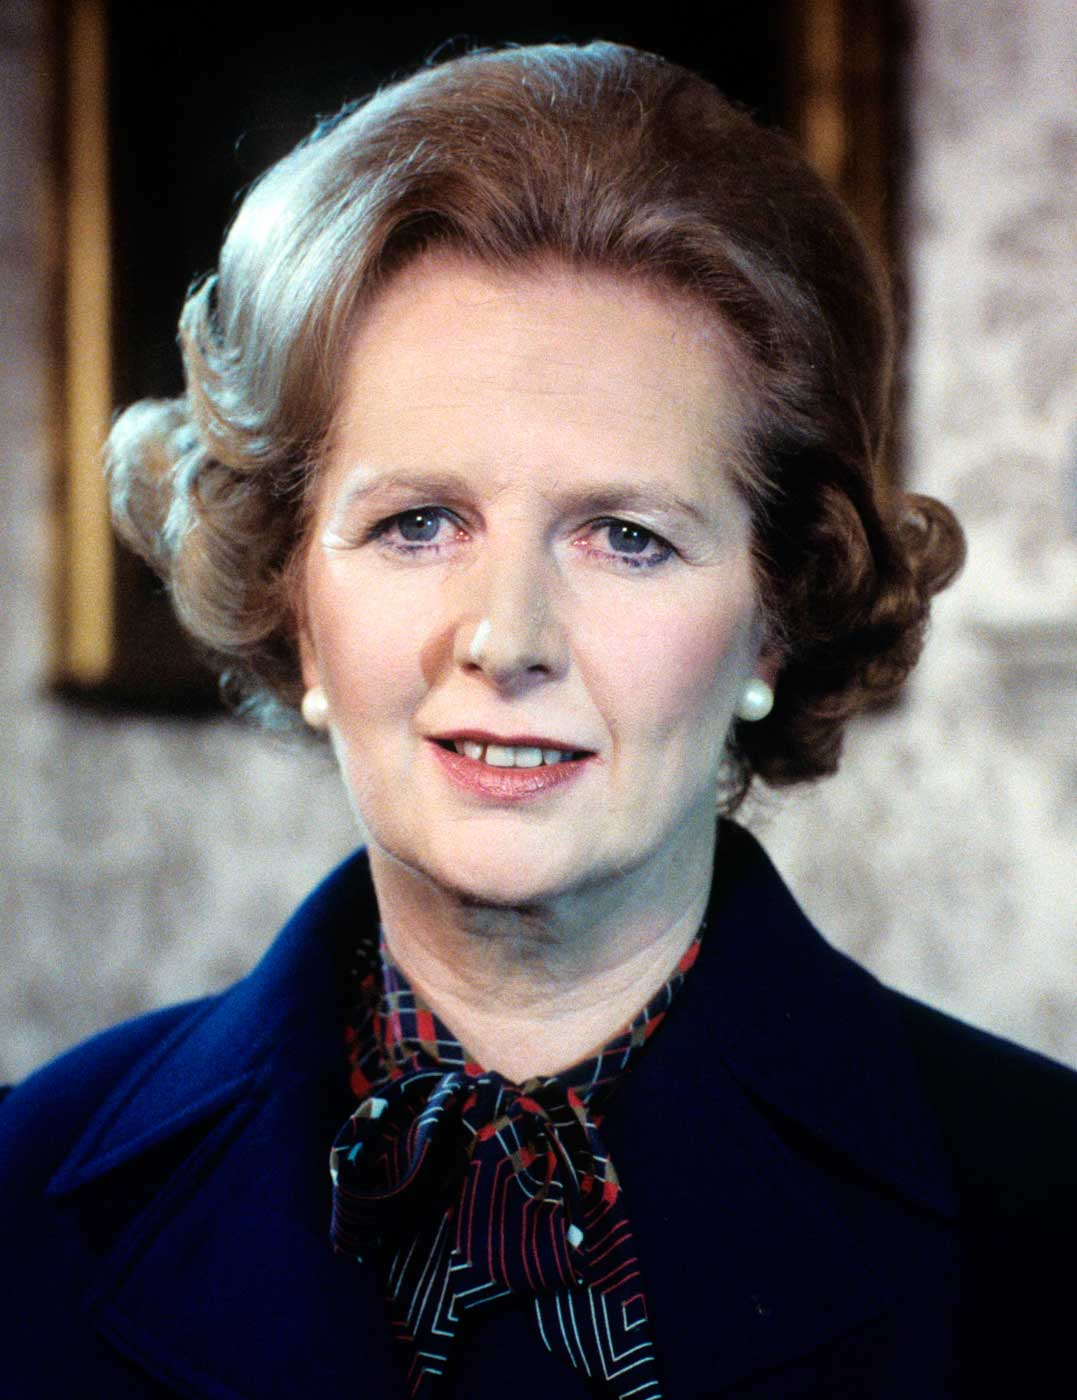 margaret thatcher Margaret hilda thatcher, baroness thatcher, lg, om, pc, frs, fric (née roberts 13 october 1925 – 8 apryle 2013) wis a breetish stateswumman, wha served as prime meenister o the unitit kinrick frae 1979 tae 1990 an as leader o the conservative pairty frae 1975 tae 1990.